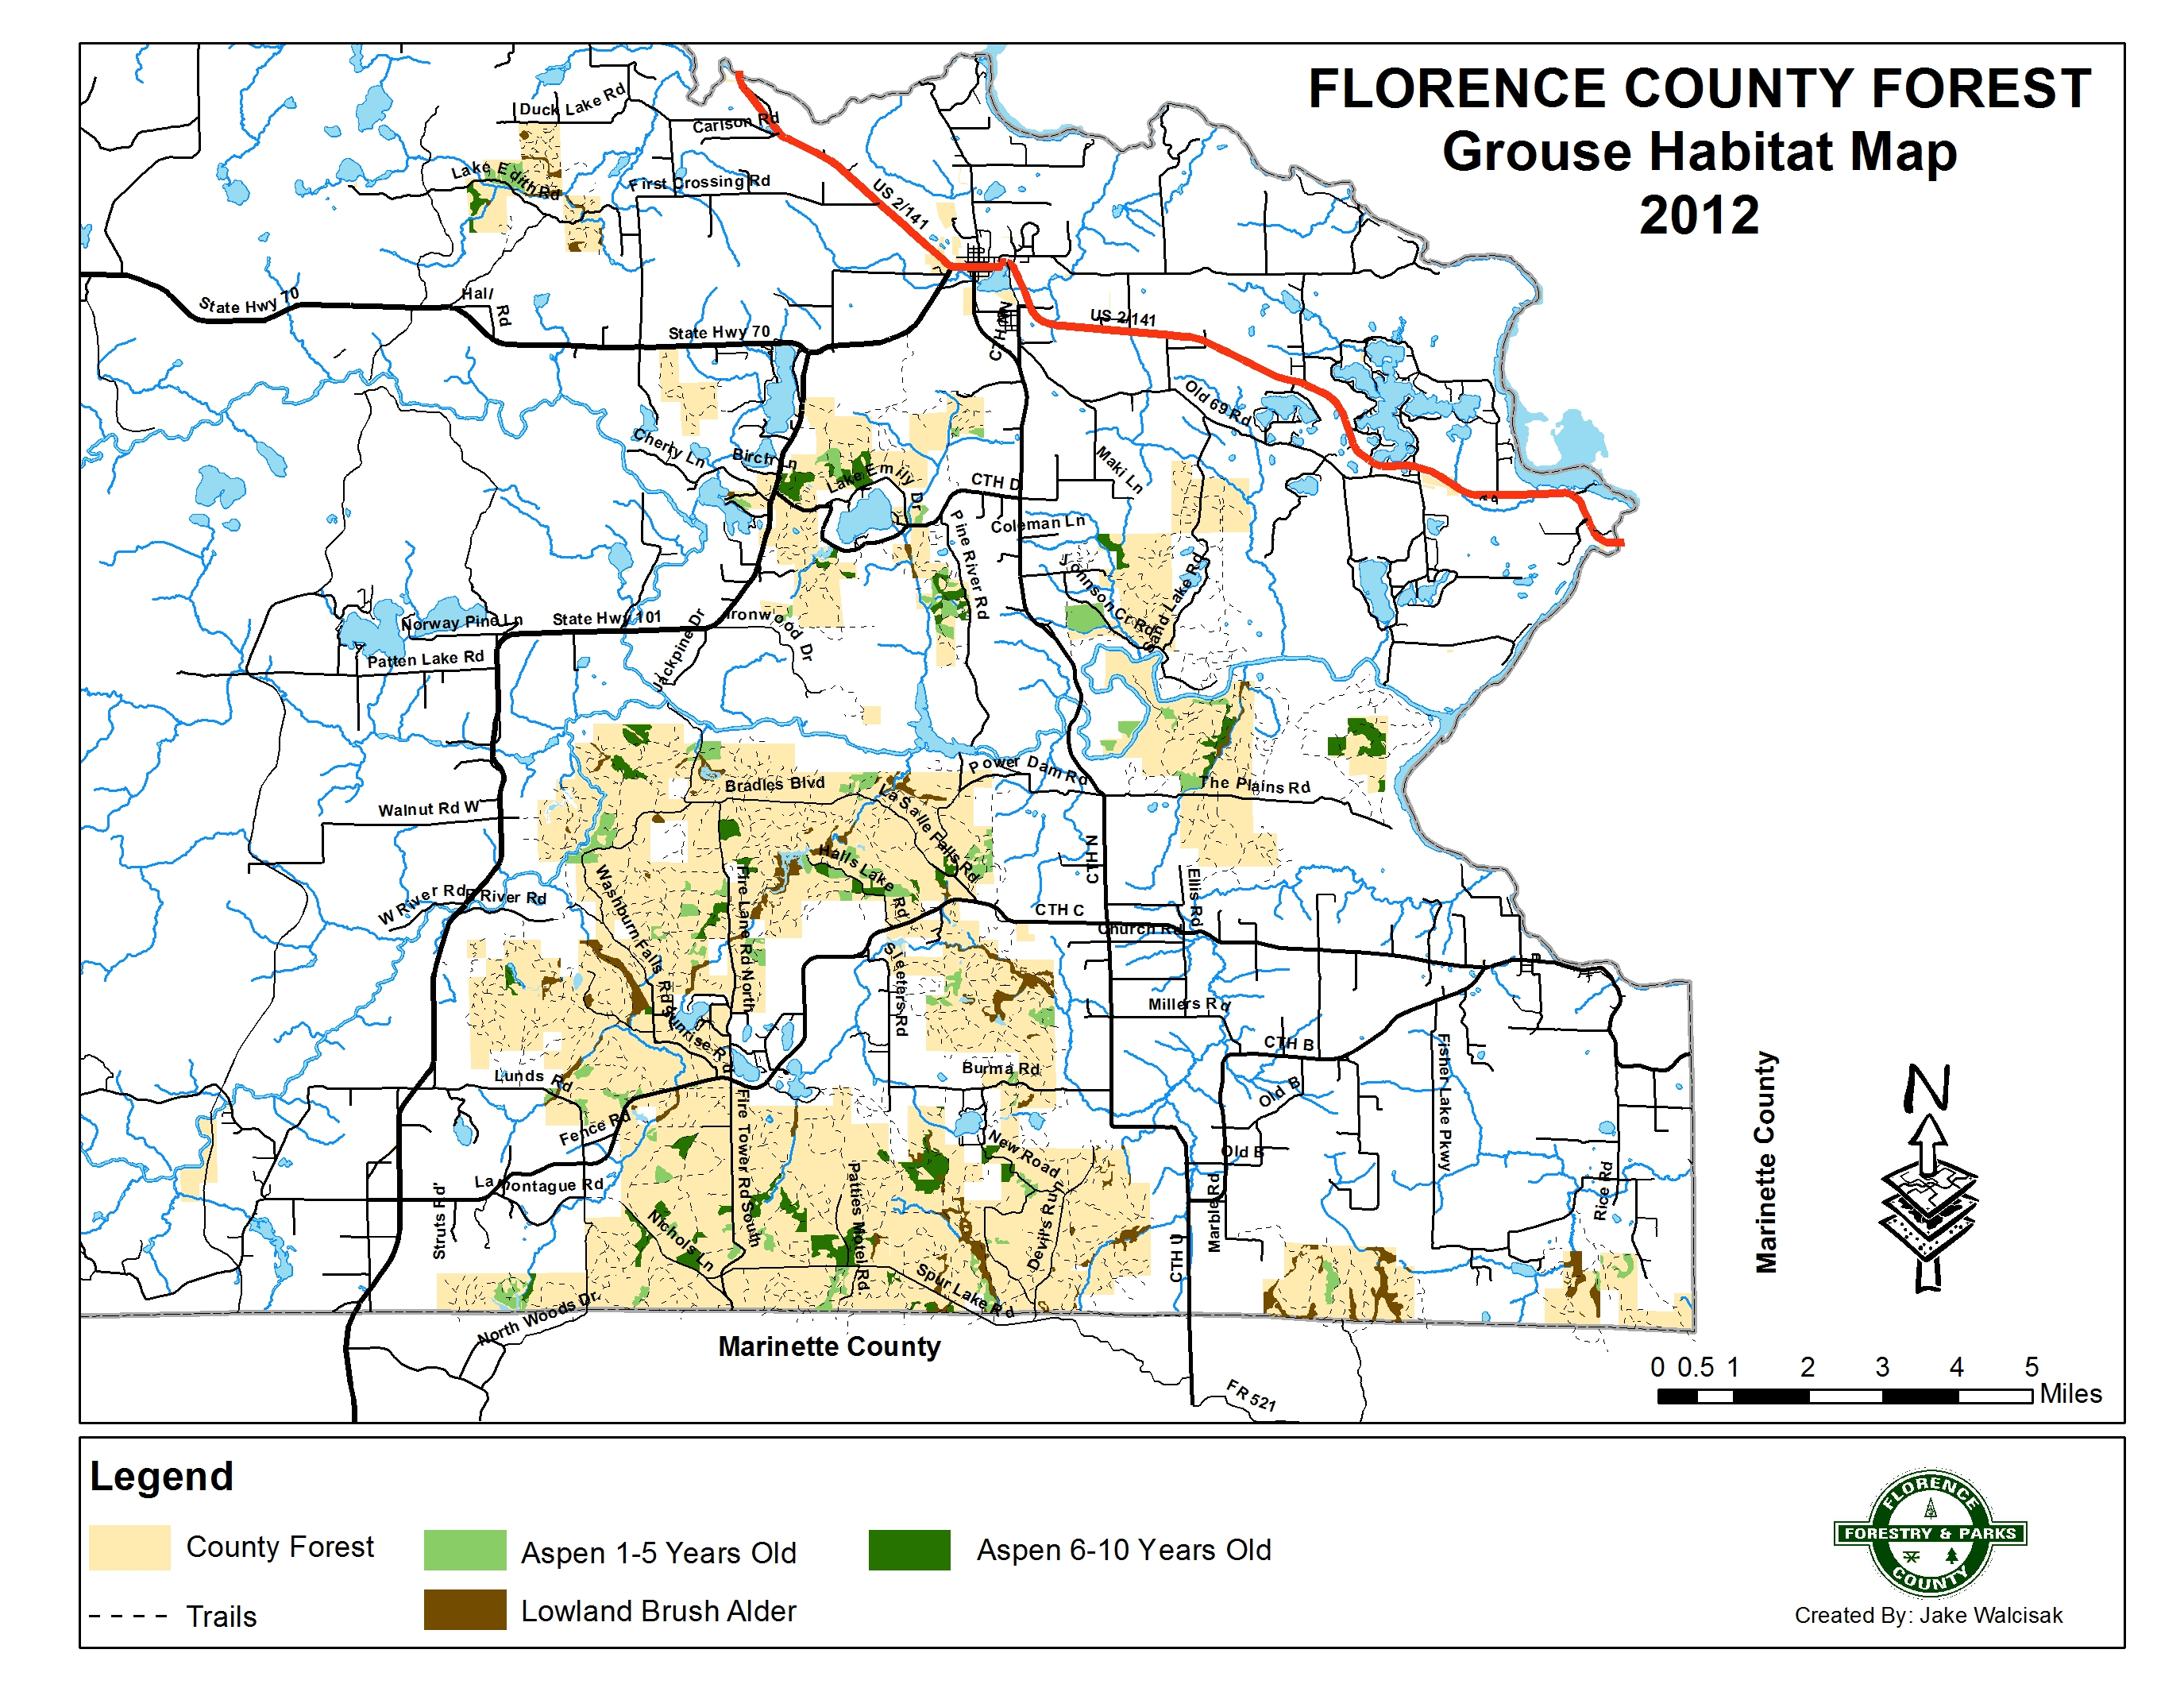 dnr fields  forest lands interactive gamebird hunting tool. florence county recreation guide  trail maps